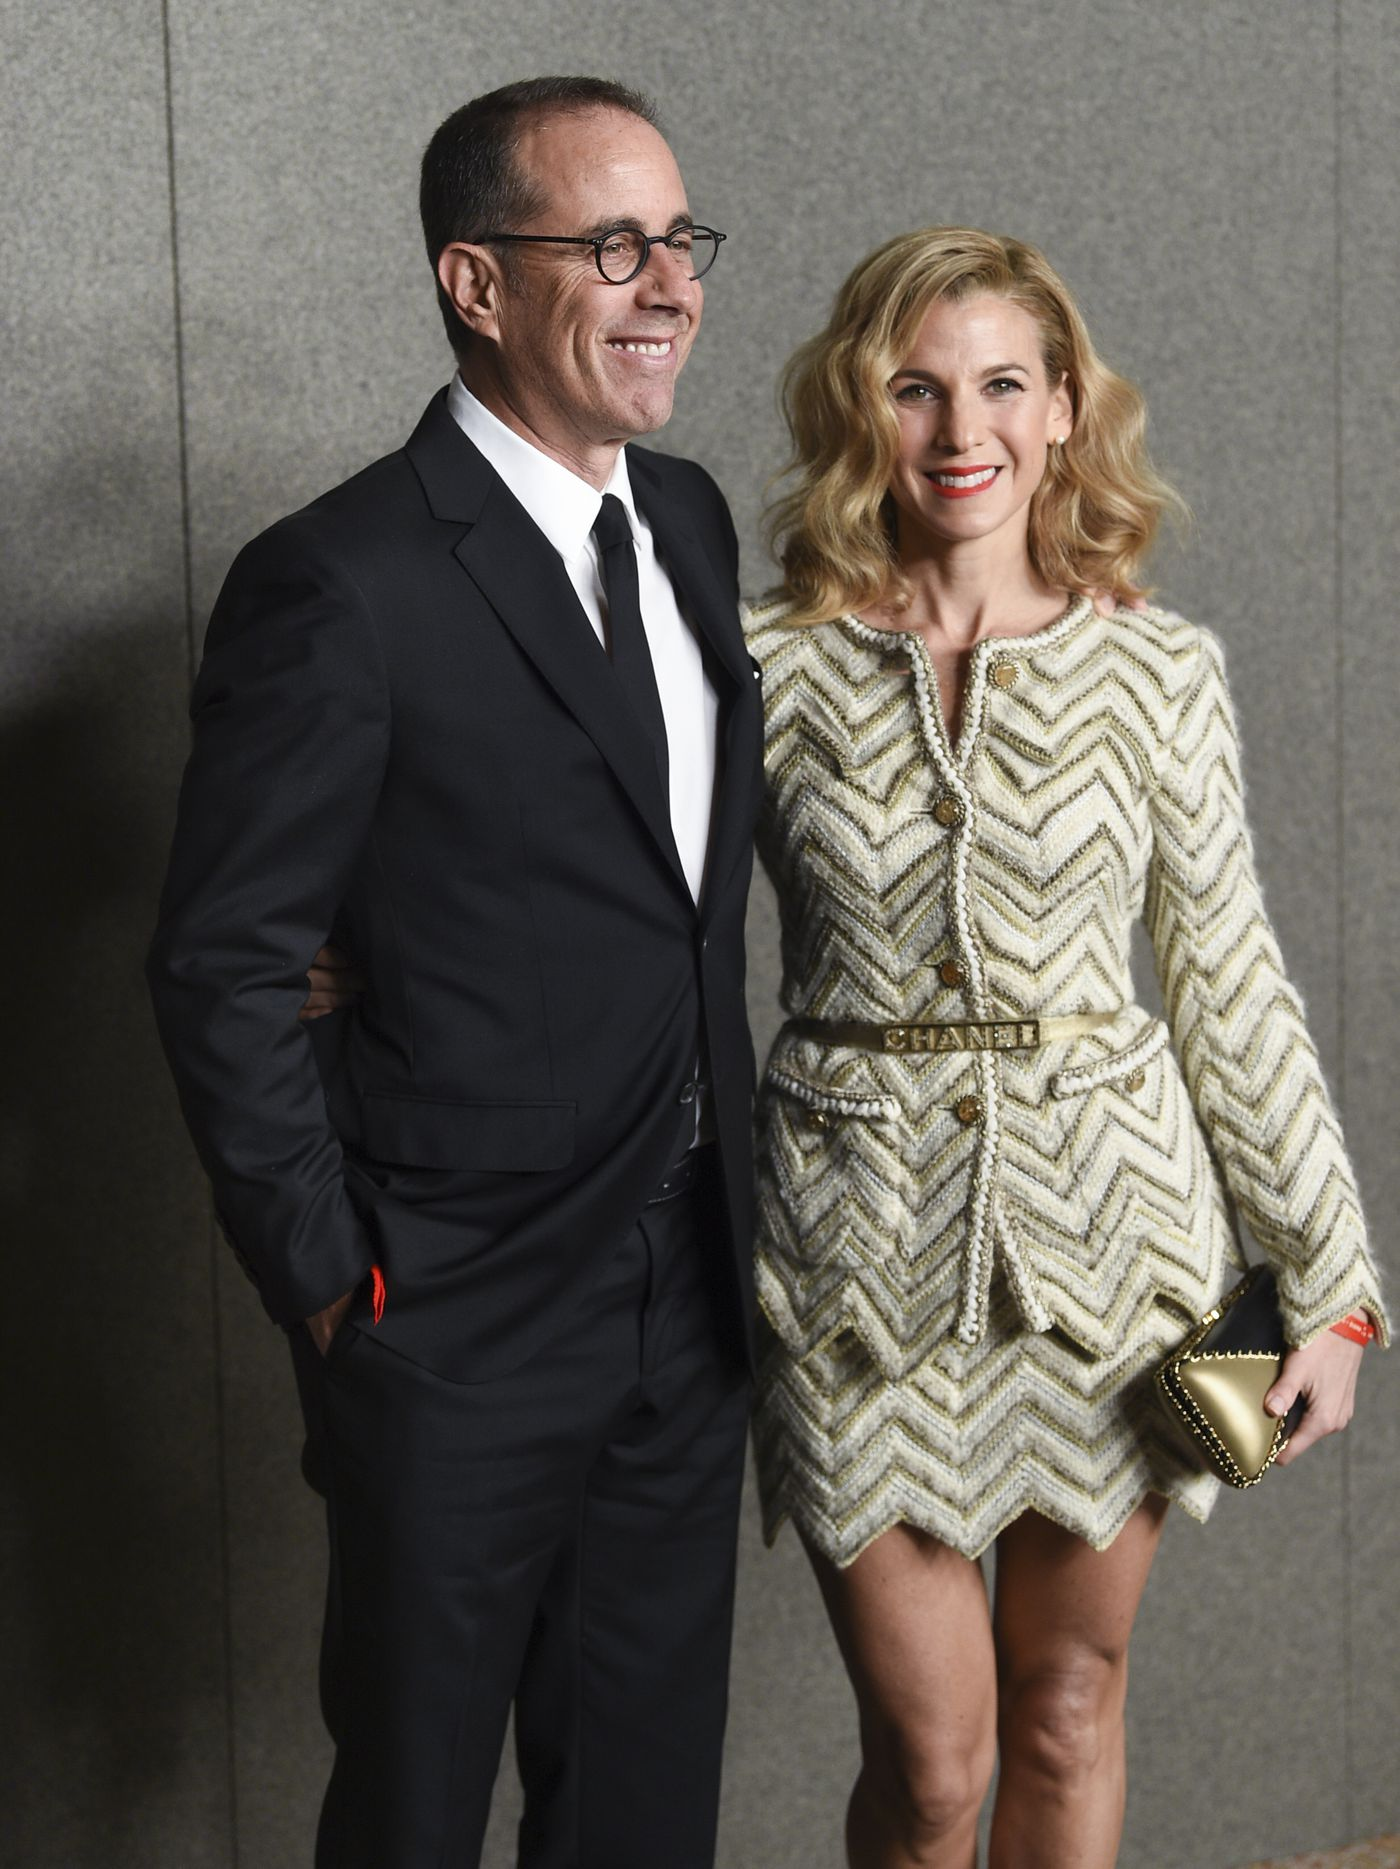 5857c90069a Comedian Jerry Seinfeld and Jessica Seinfeld attend the Chanel Metiers  d Art 2018 19